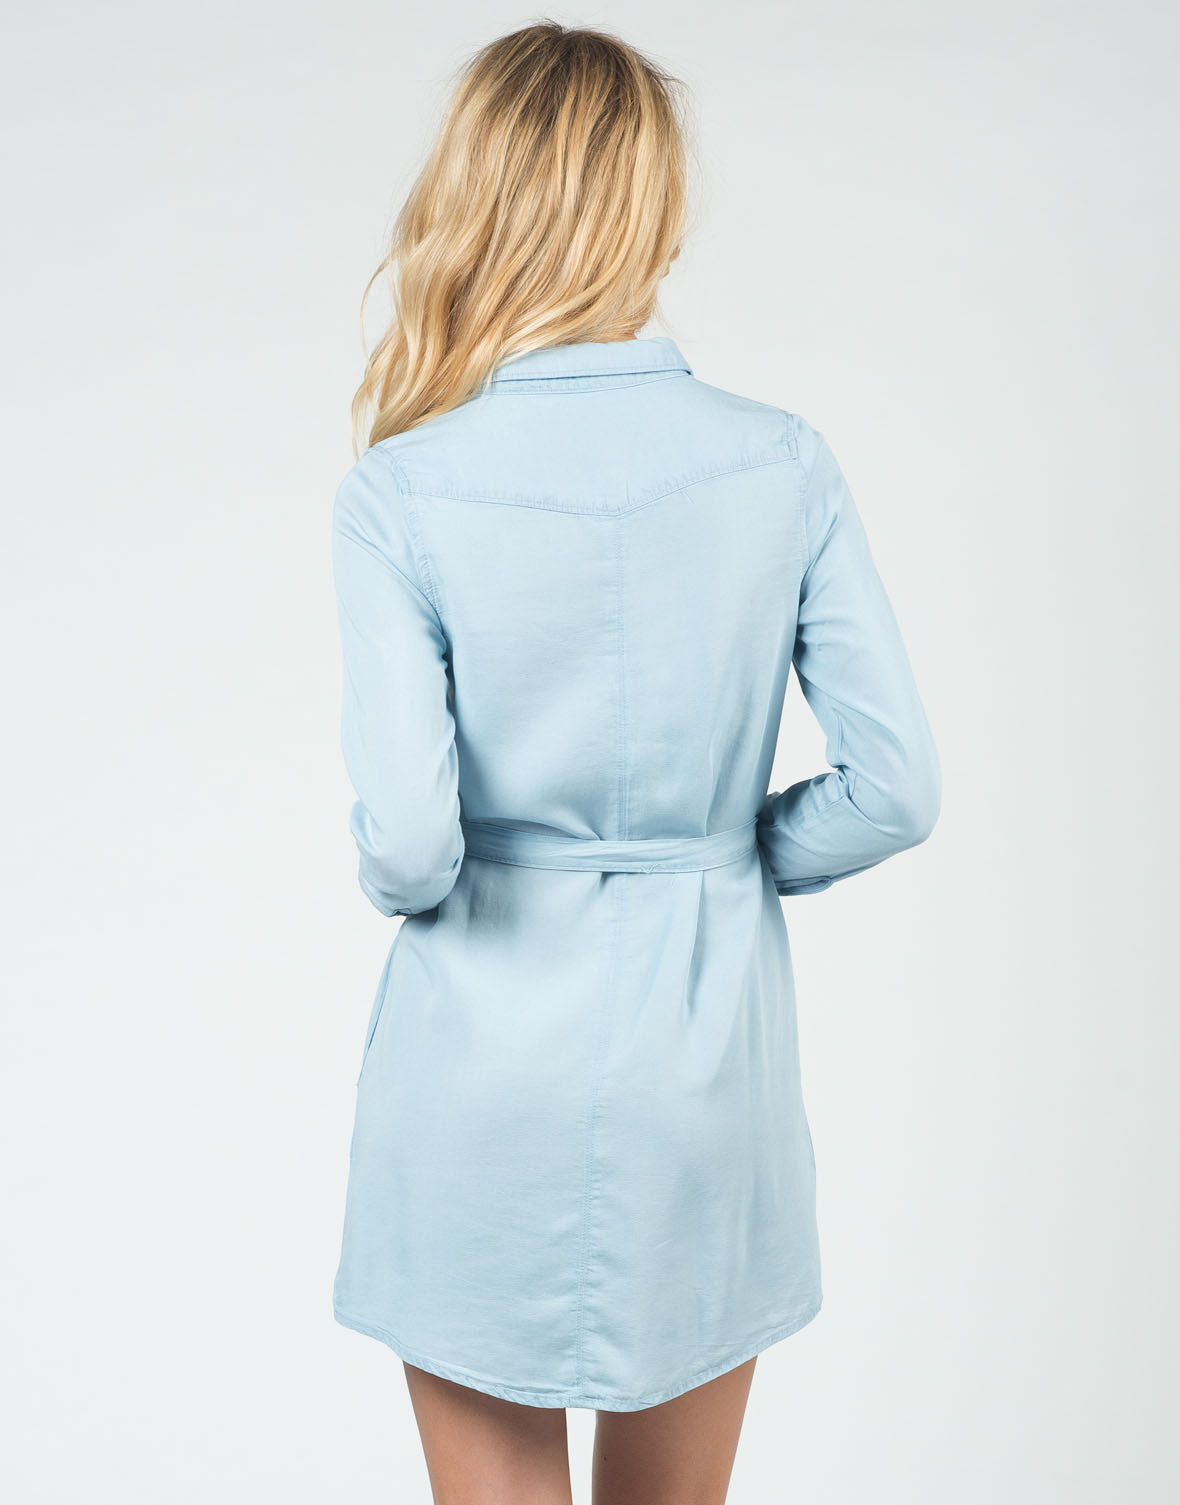 Back View of Chambray Shirt Dress